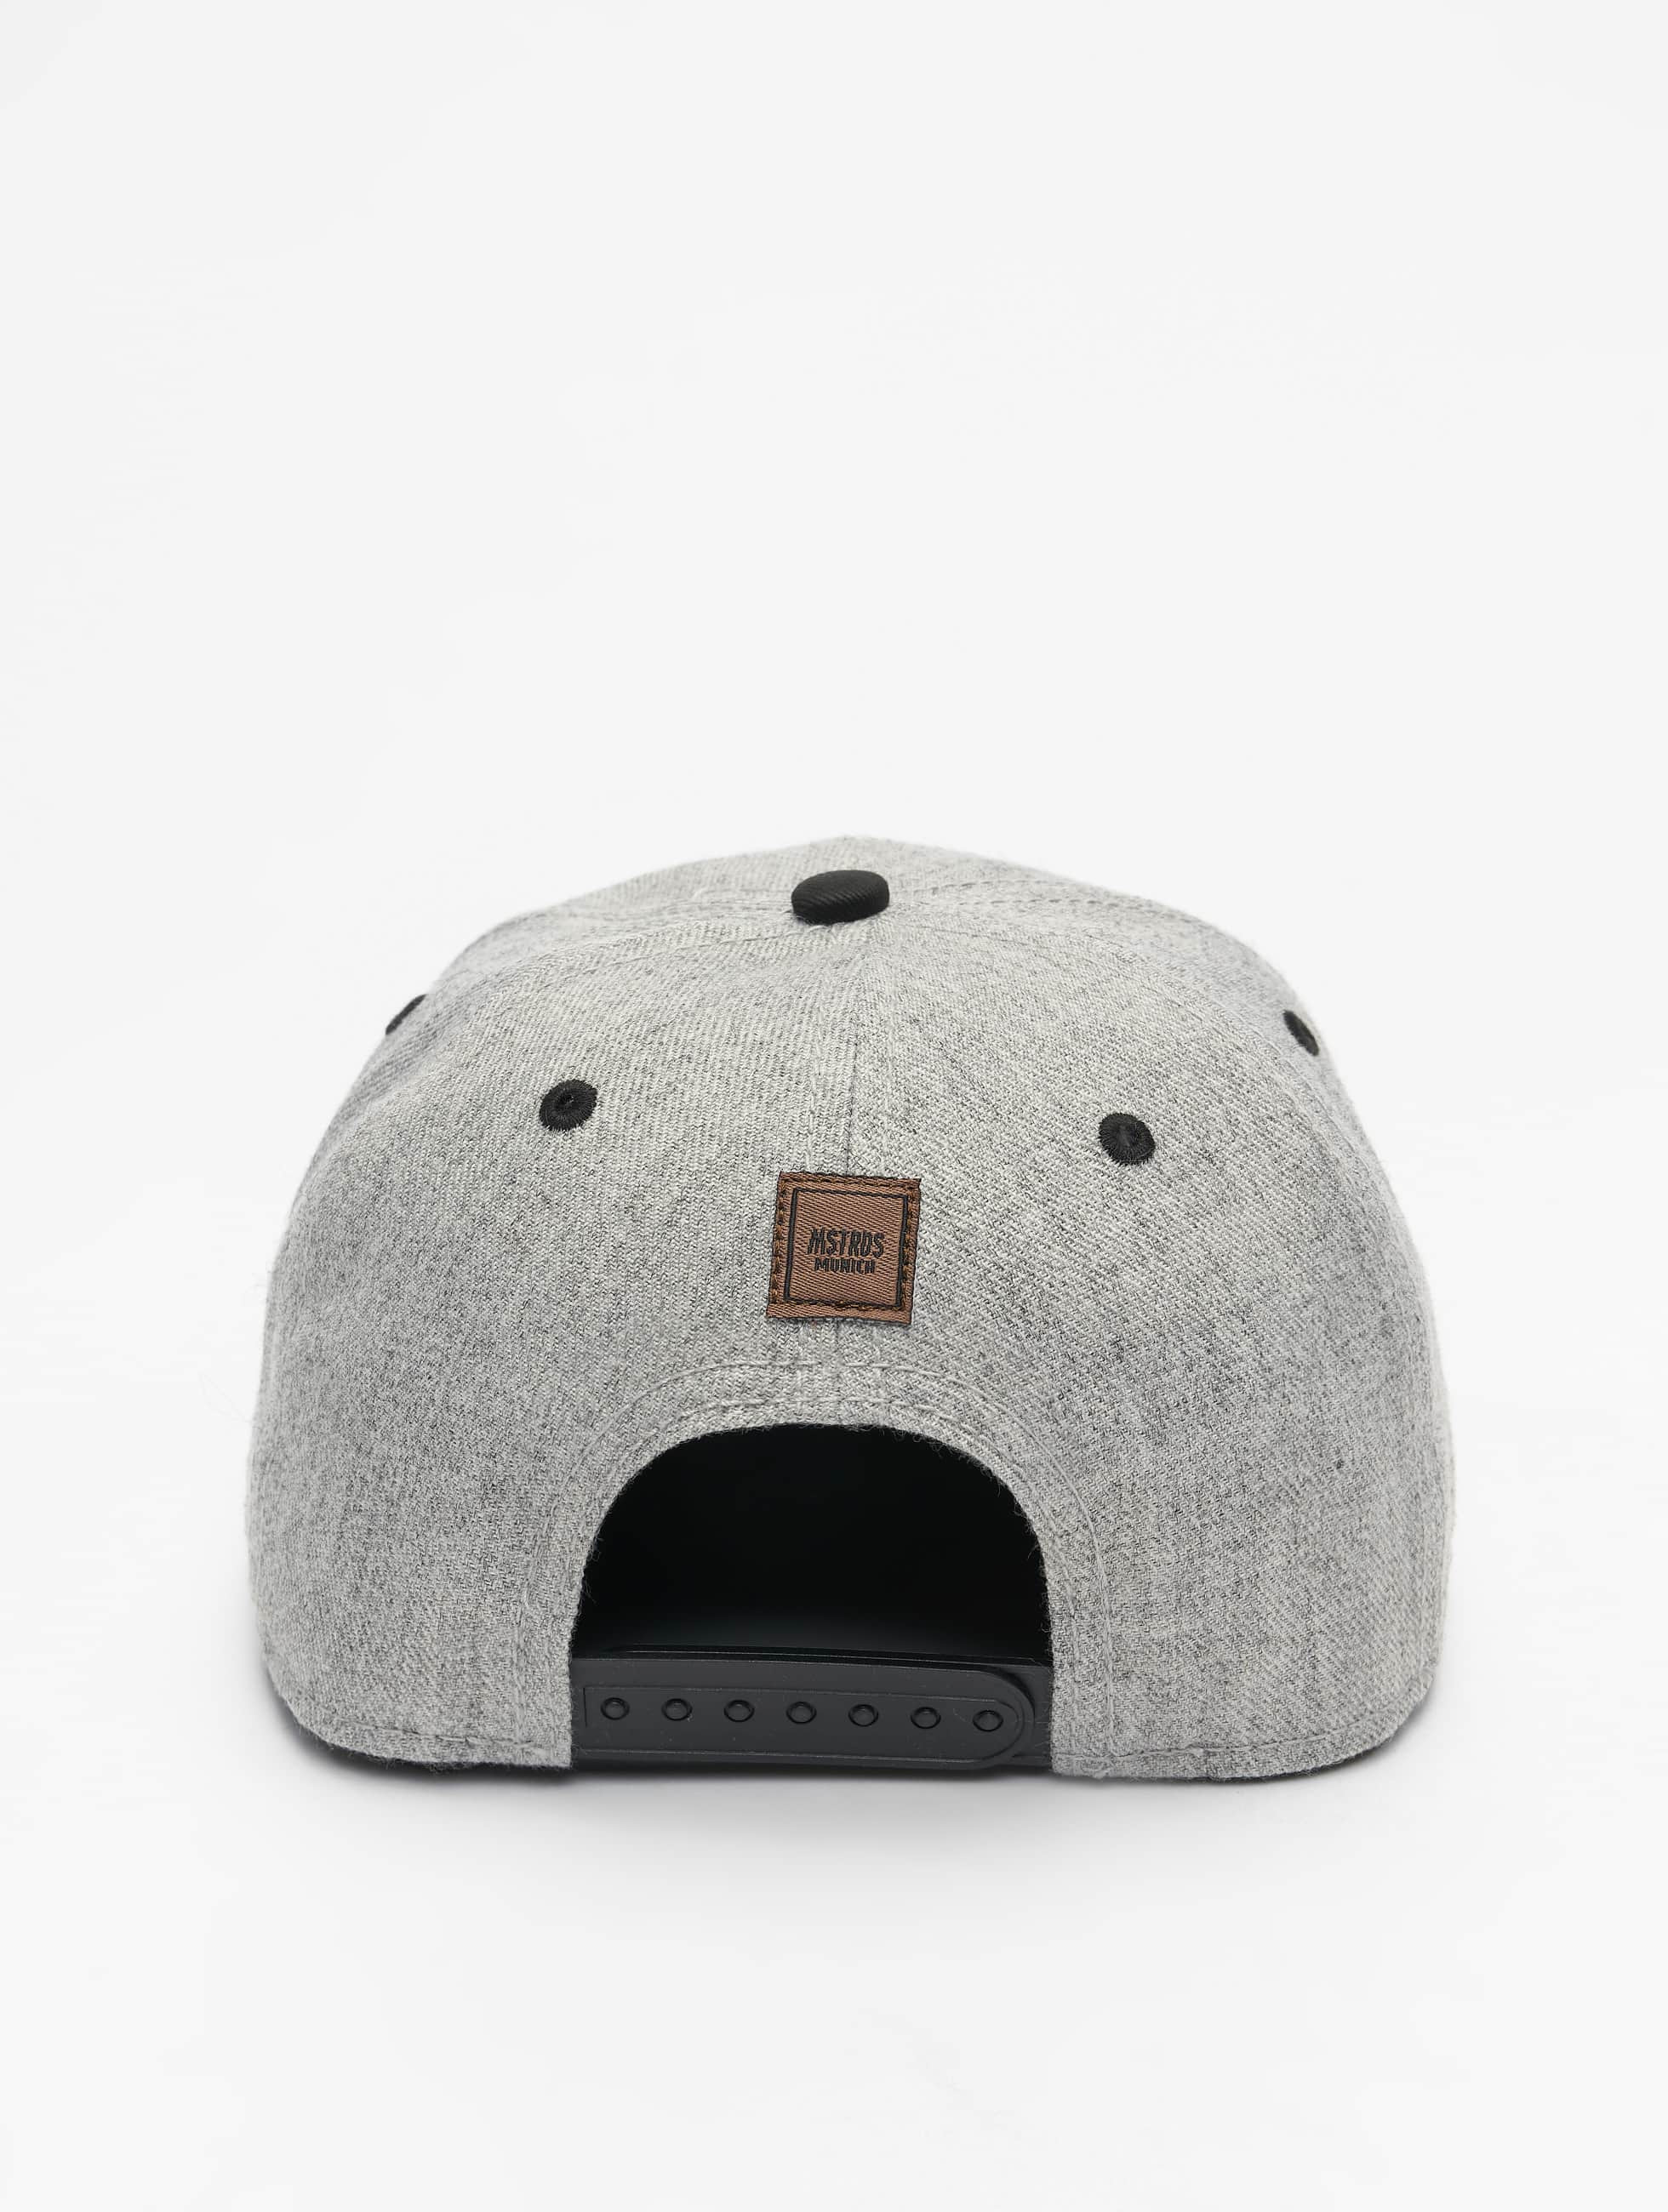 MSTRDS Snapback Caps H Letter szary